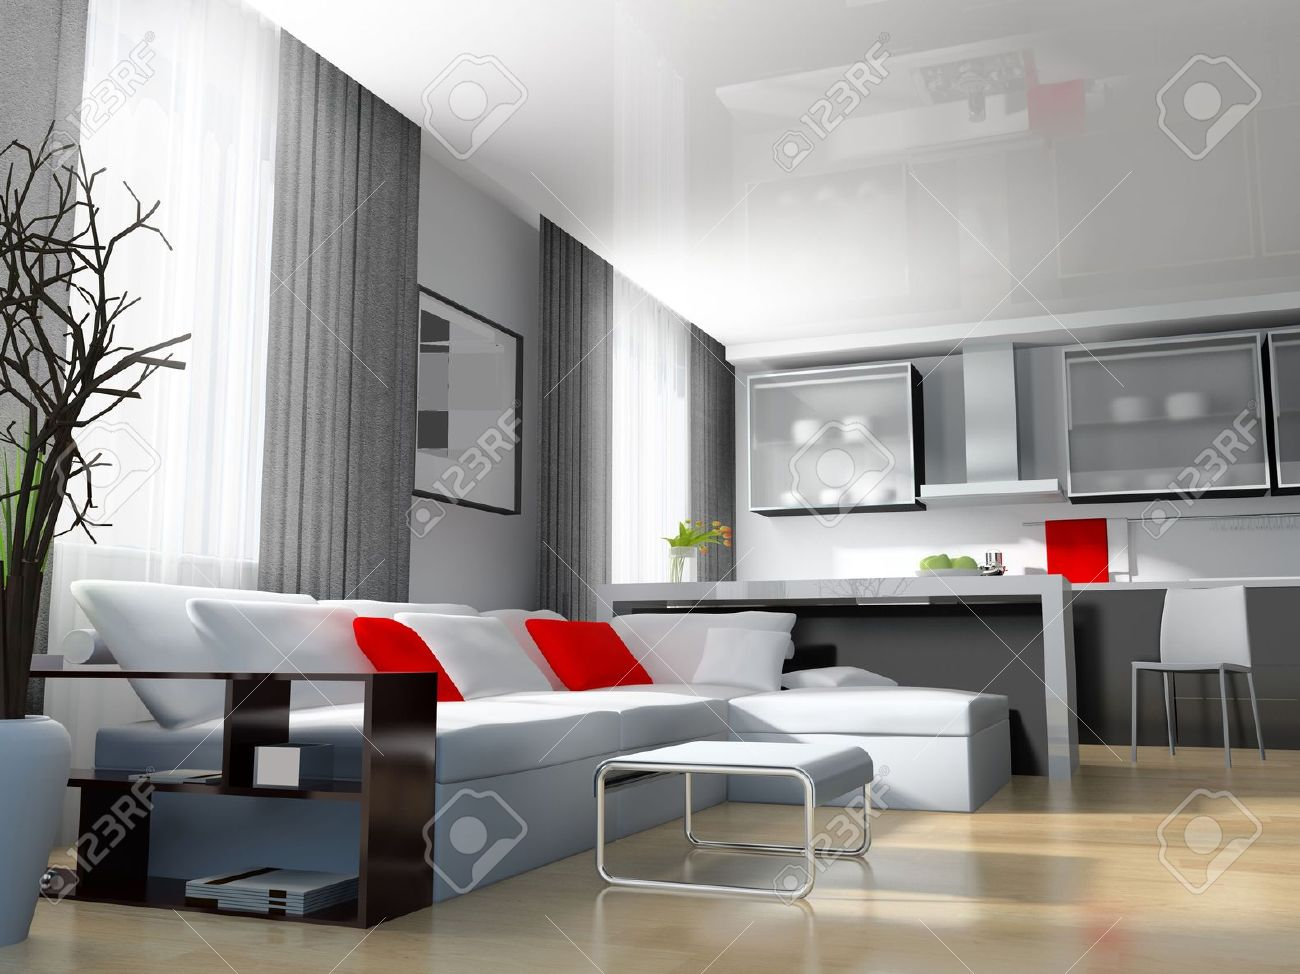 Modern White Drawing Room 3d Image Stock Photo   6658122